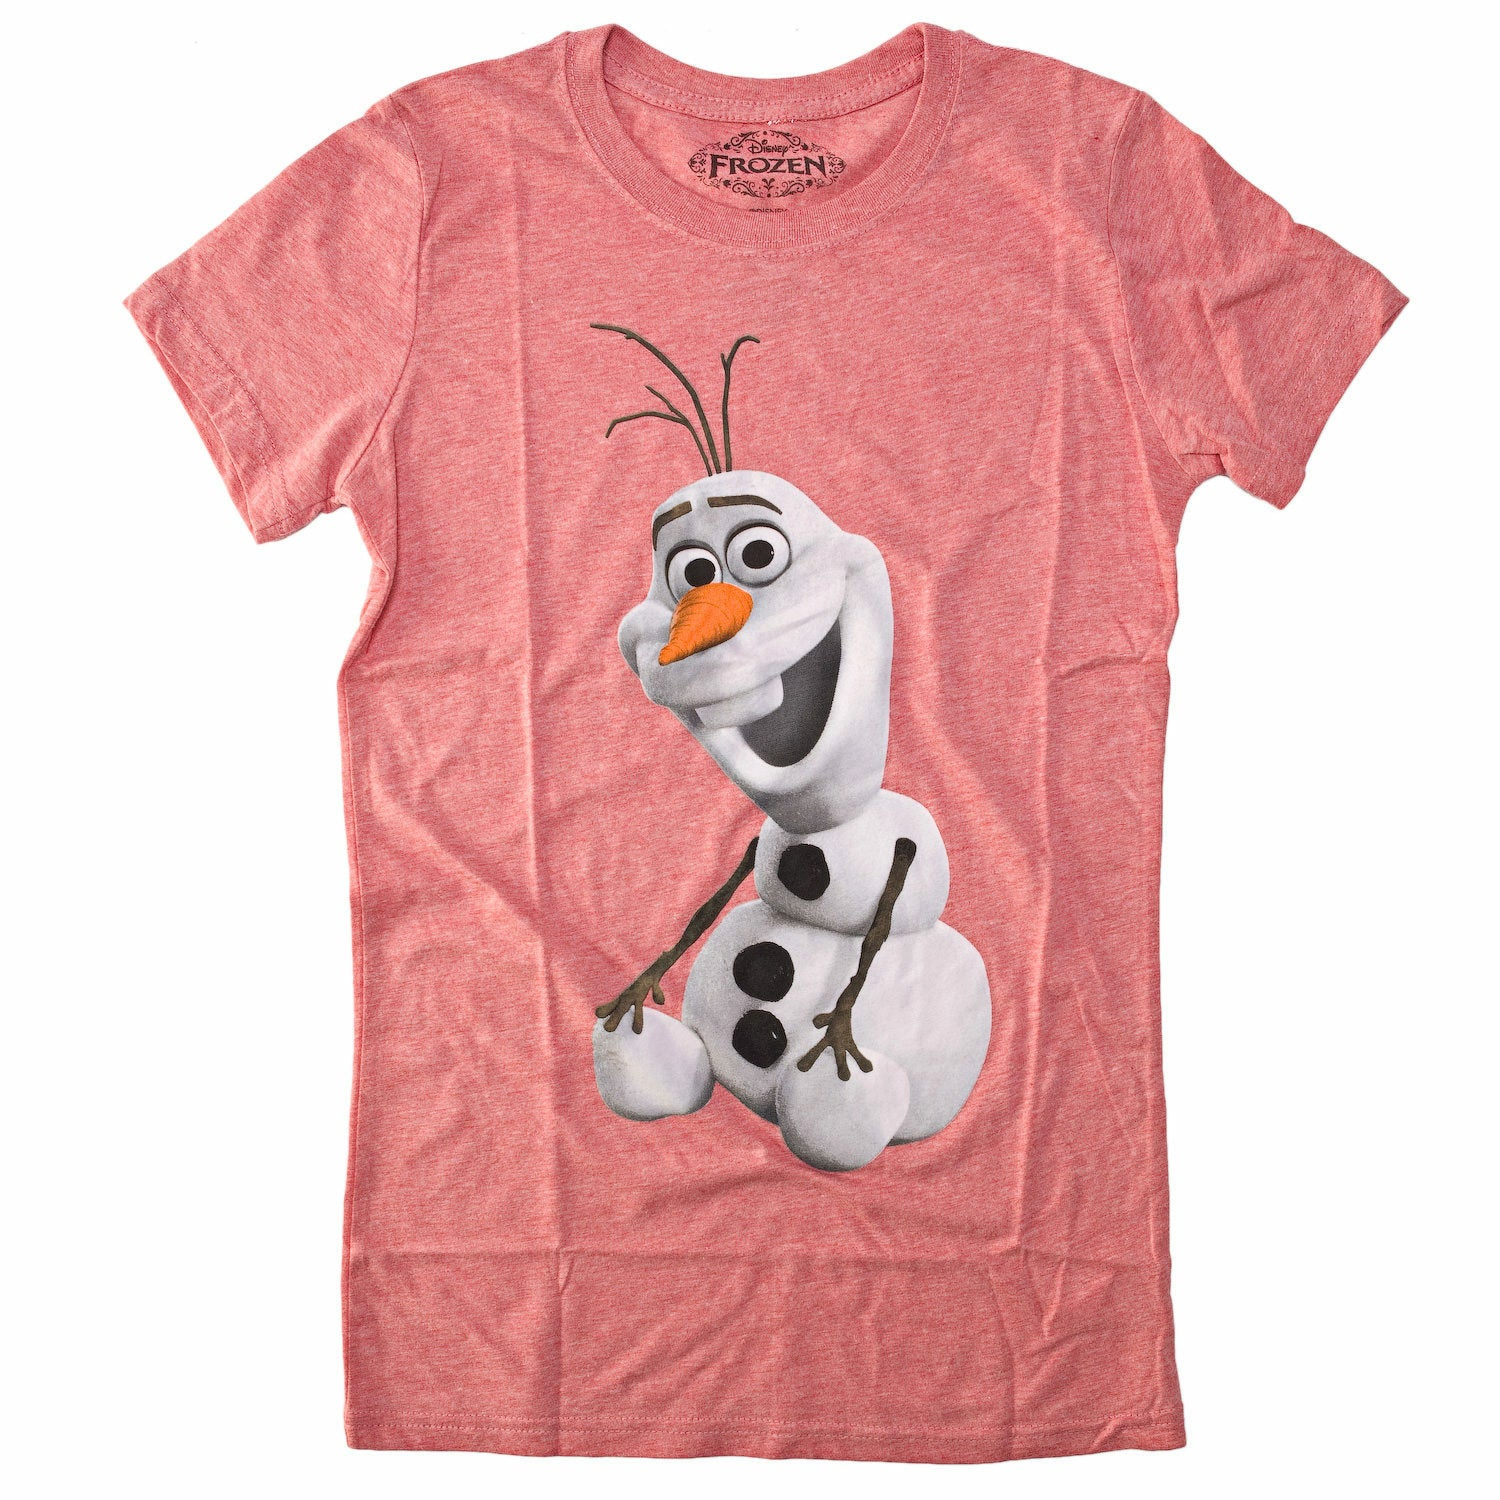 Disney Frozen Sitting Olaf Juniors Heather Red T-Shirt